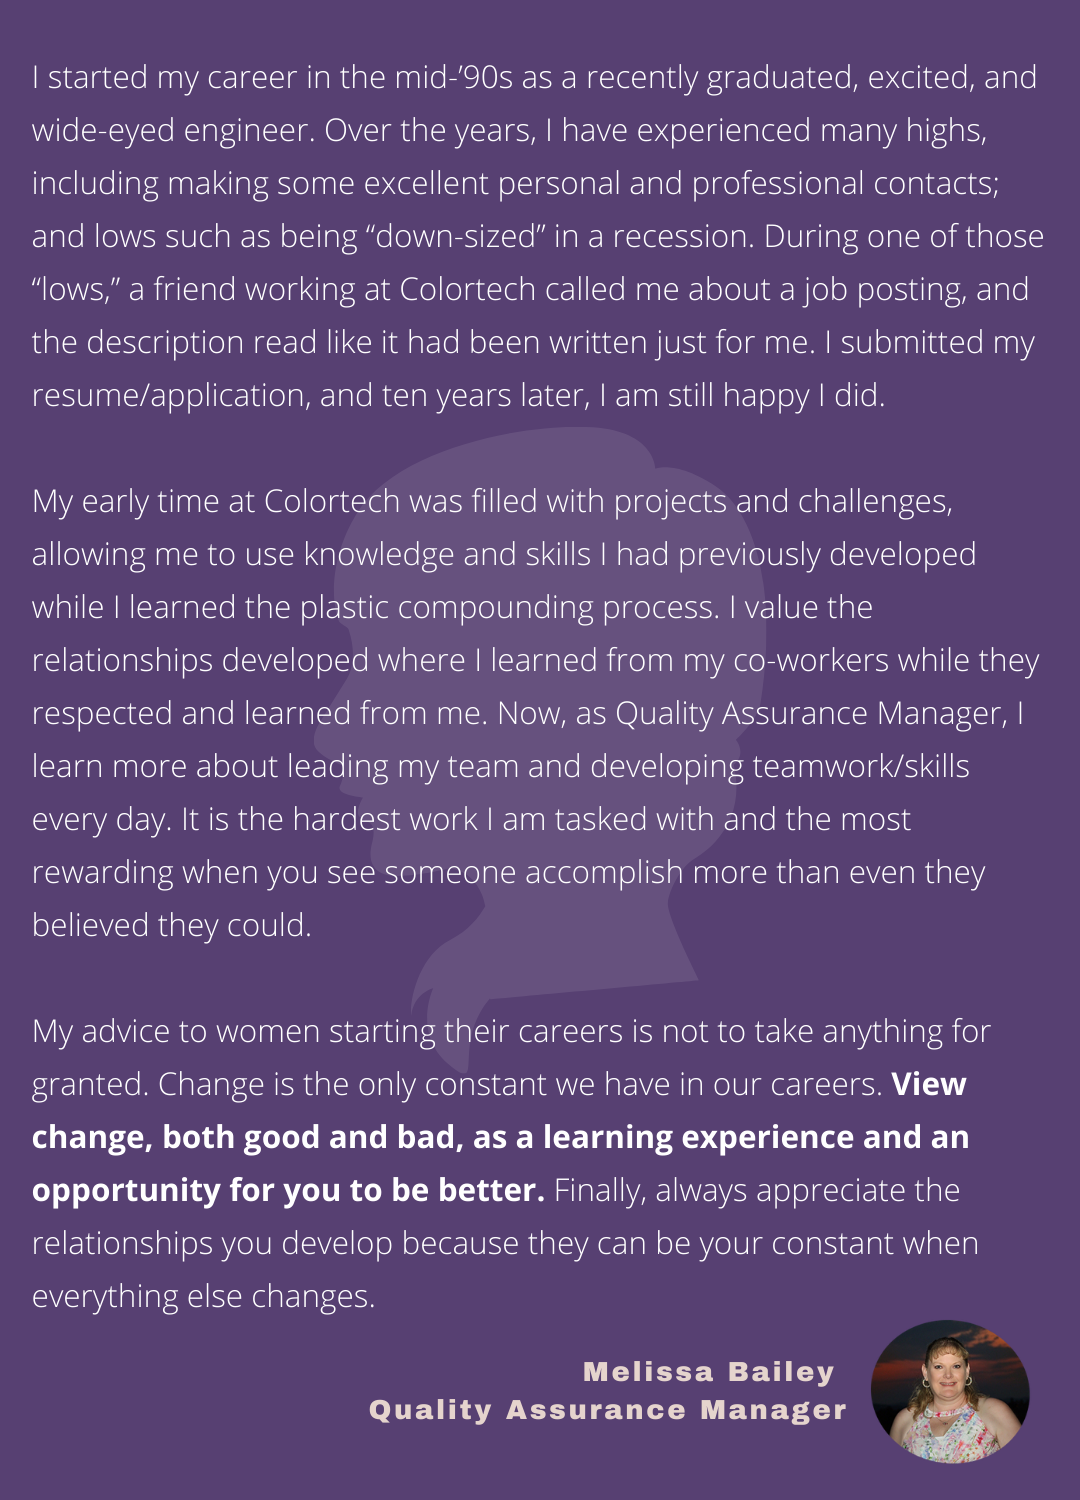 Melissa Bailey, Quality Service Engineer, reflects on the highs and lows of her career and what led her to Colortech. Bailey emphasizes change is the only constant we have in our careers.